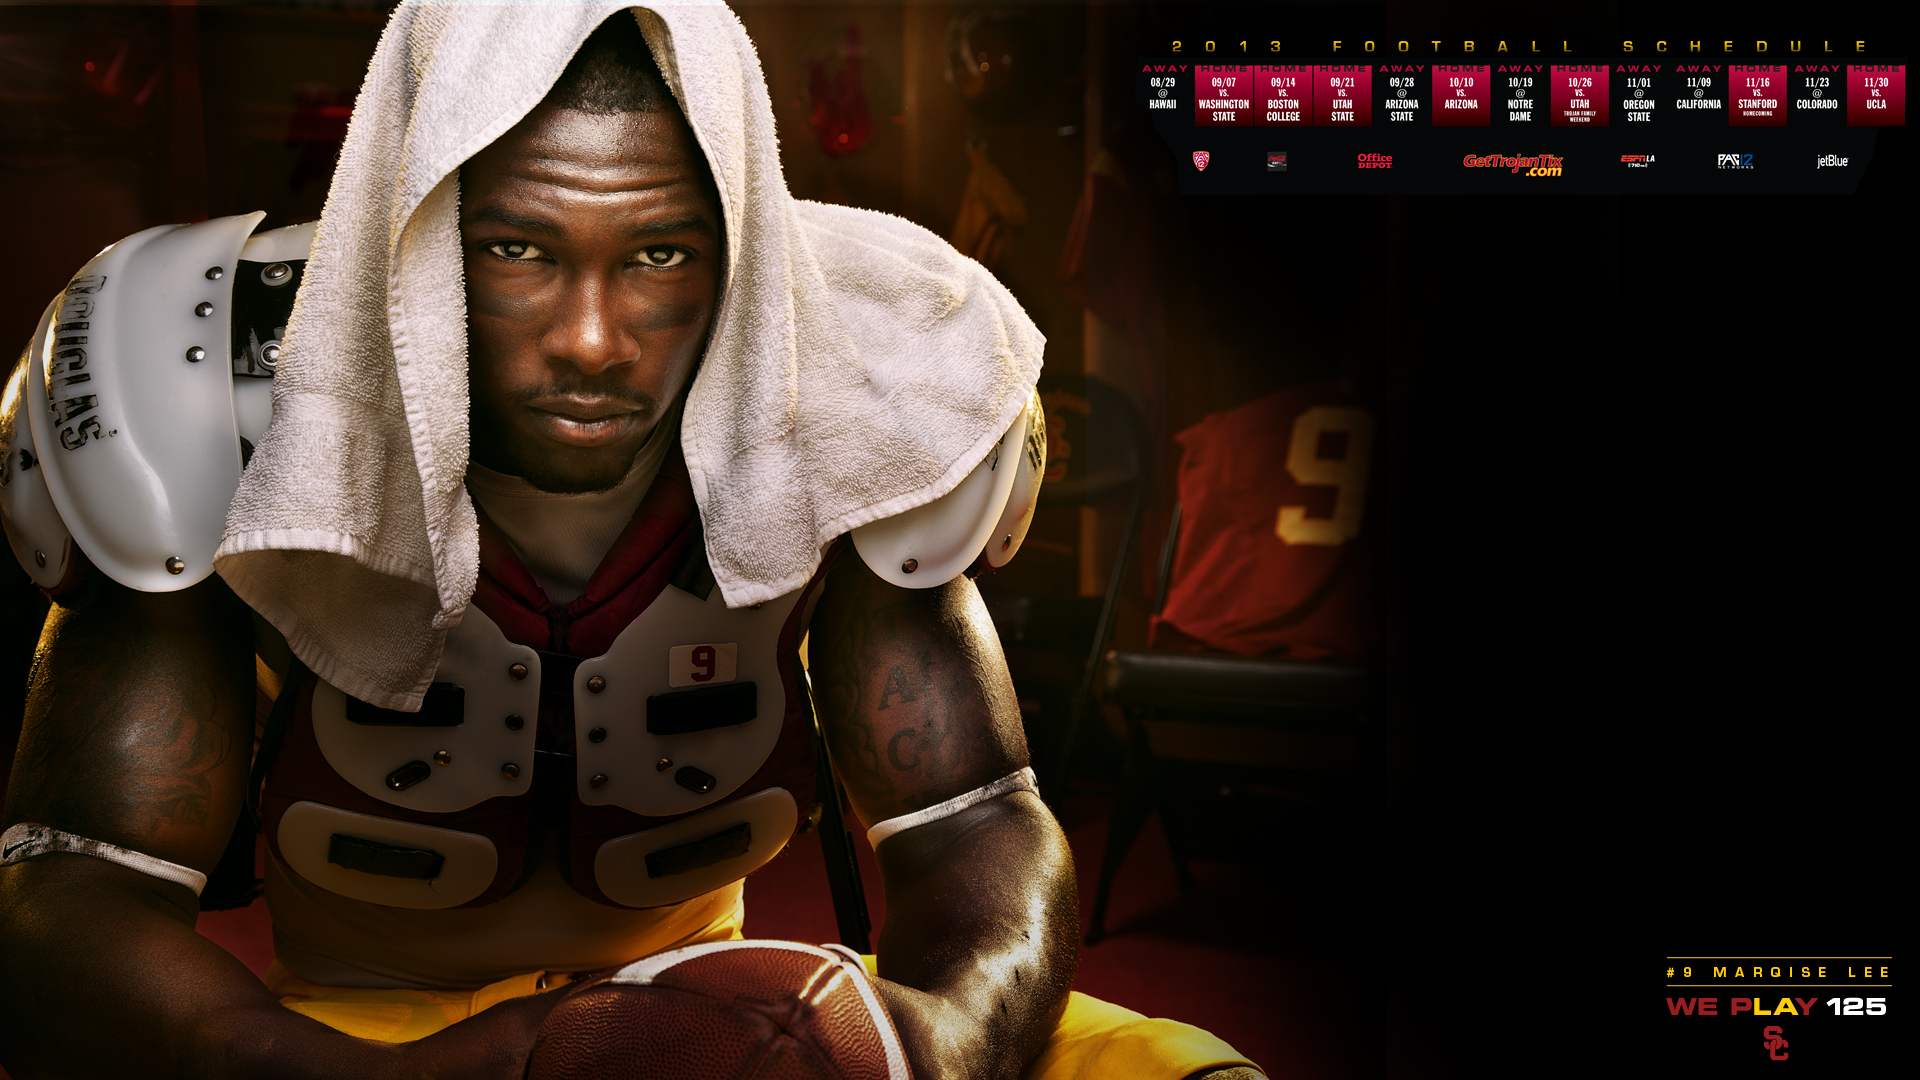 Usc Trojans Football Wallpaper 2013 2013 football schedule poster 1920x1080